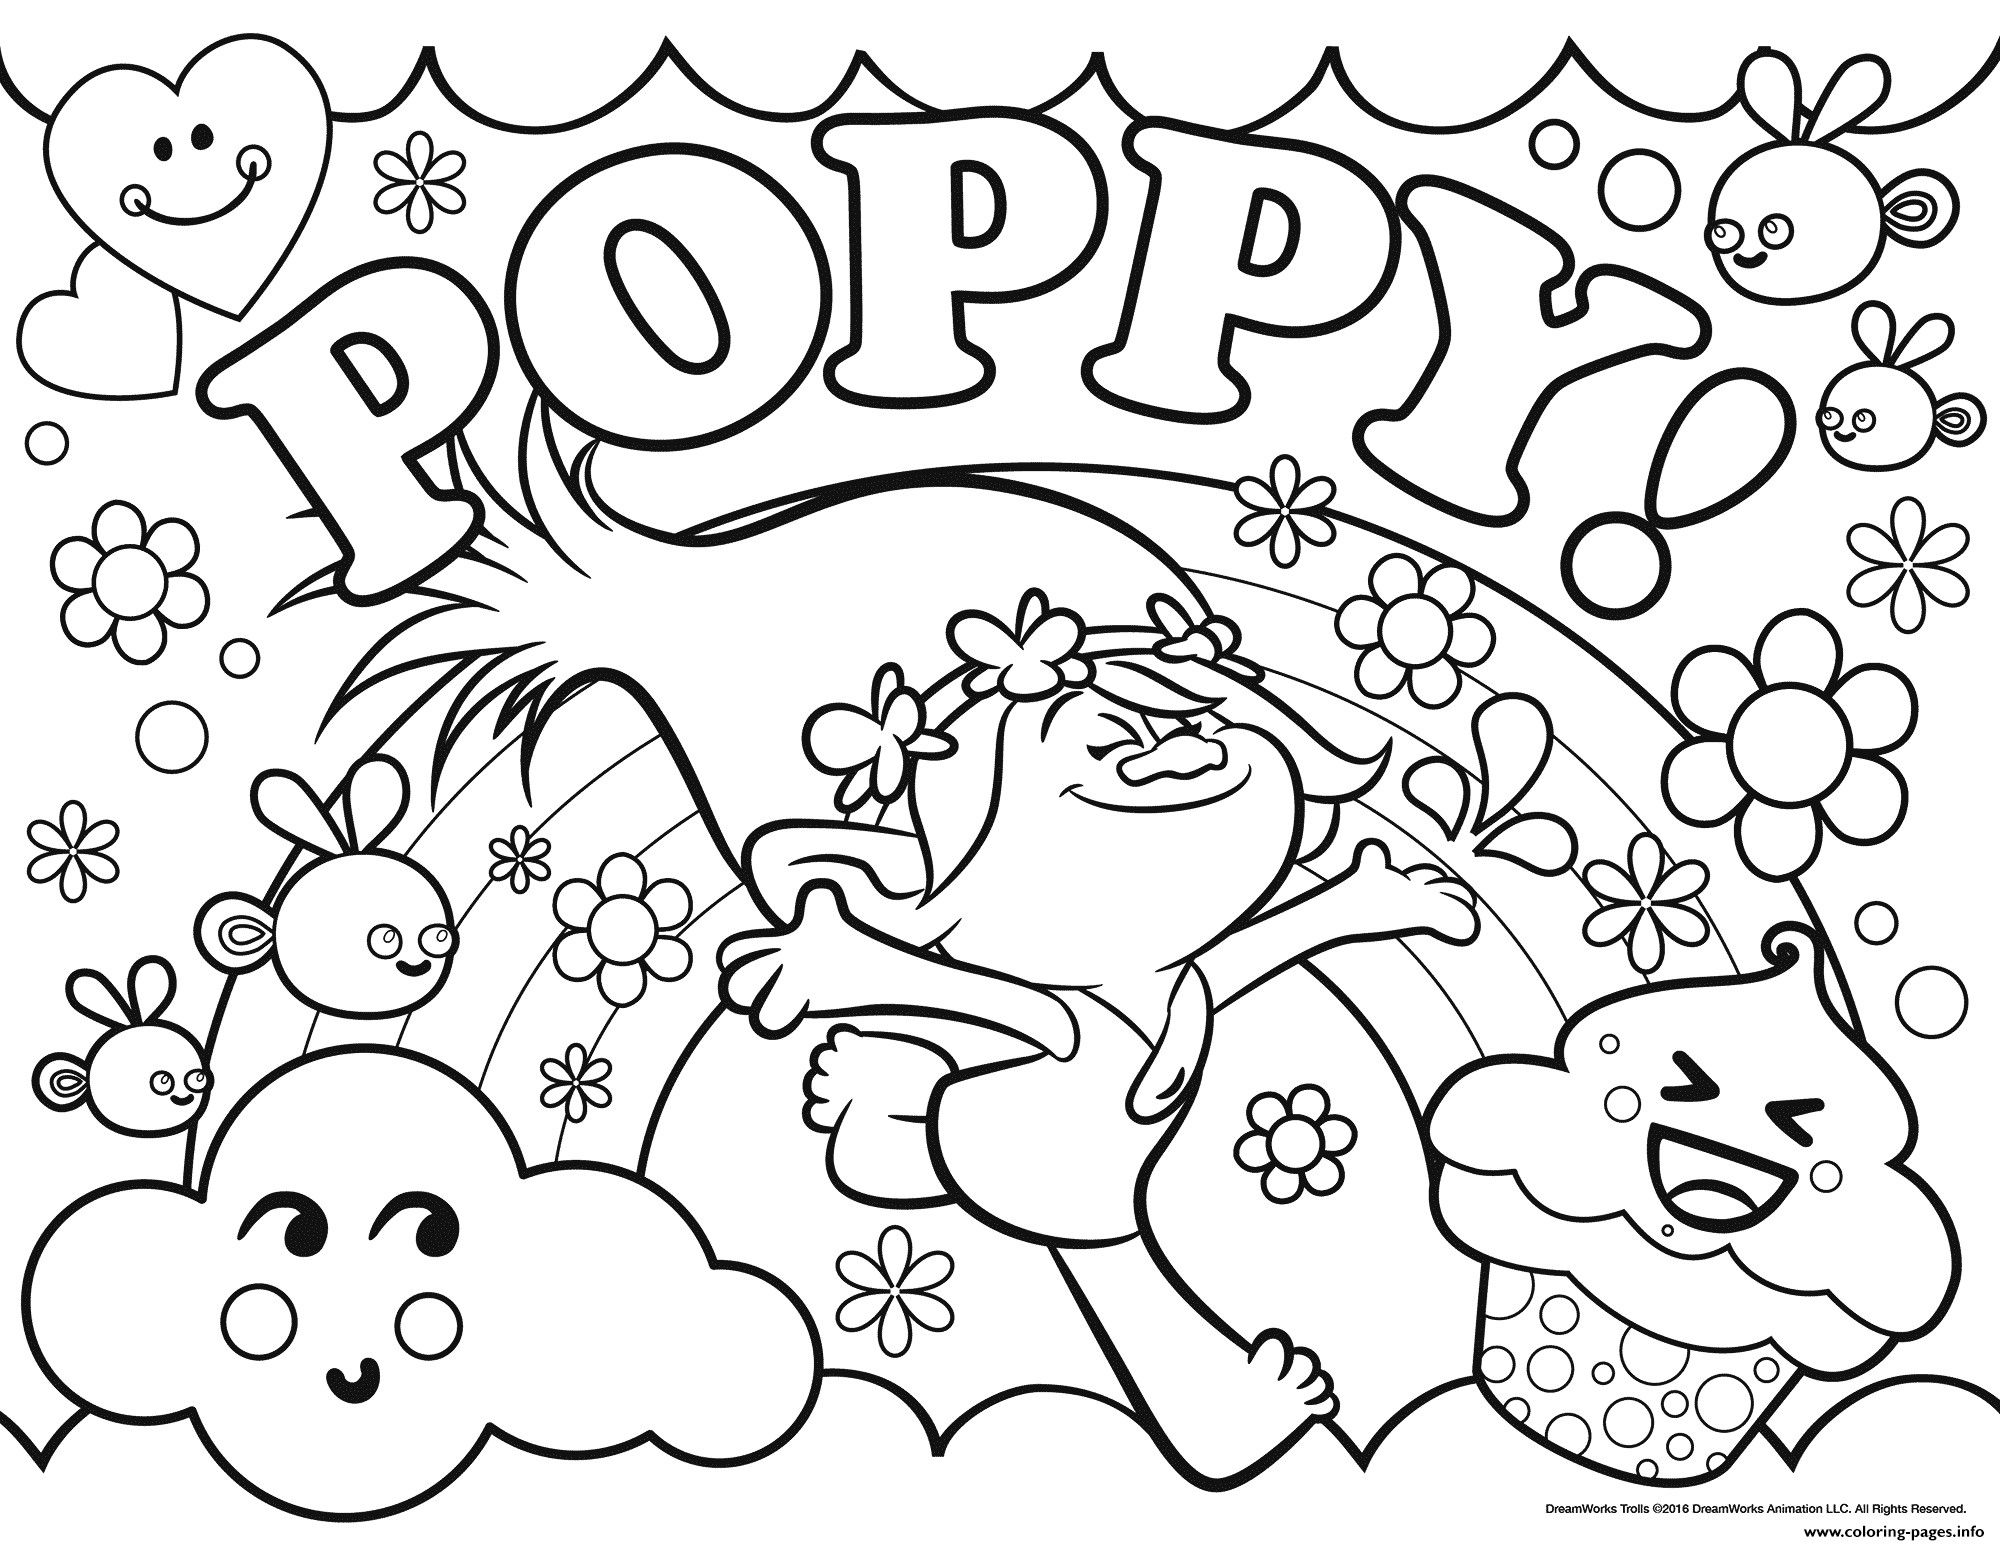 Trolls Coloring Pages Pdf Photos